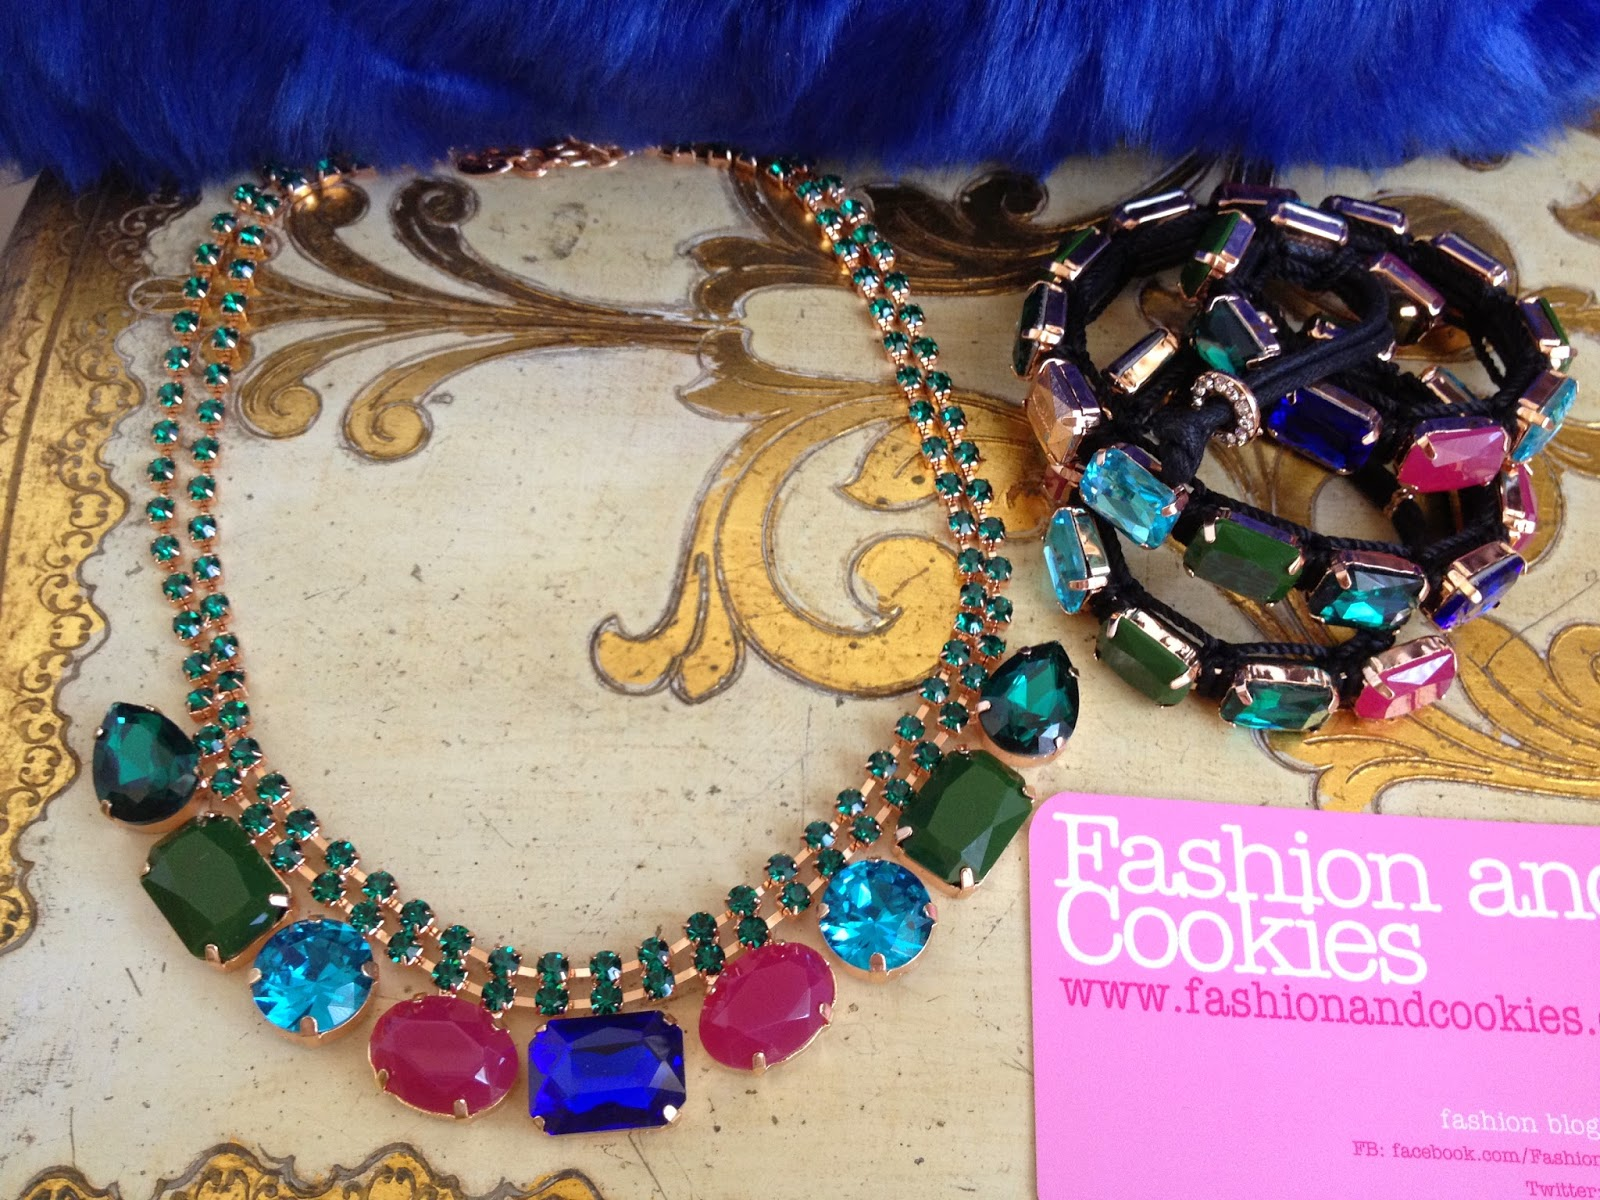 Sodini bijoux autunno inverno 2014 2015, new necklaces and bracelets, faux fur bag, Fashion and Cookies, fashion blogger